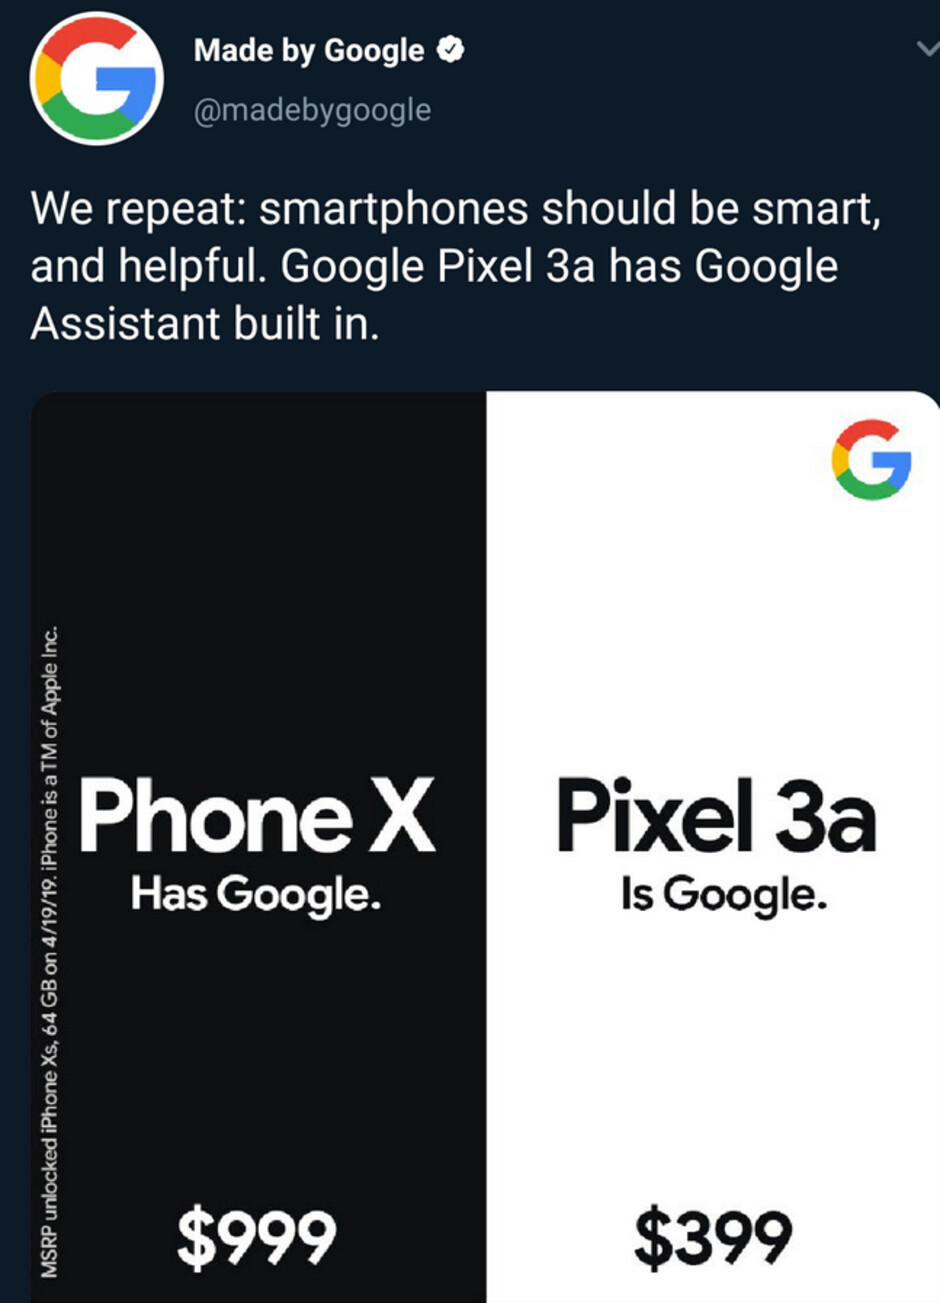 Phone X has Google; the Pixel 3a is Google - Google has a catchy new slogan for its latest Pixel 3a-iPhone XS comparison ad